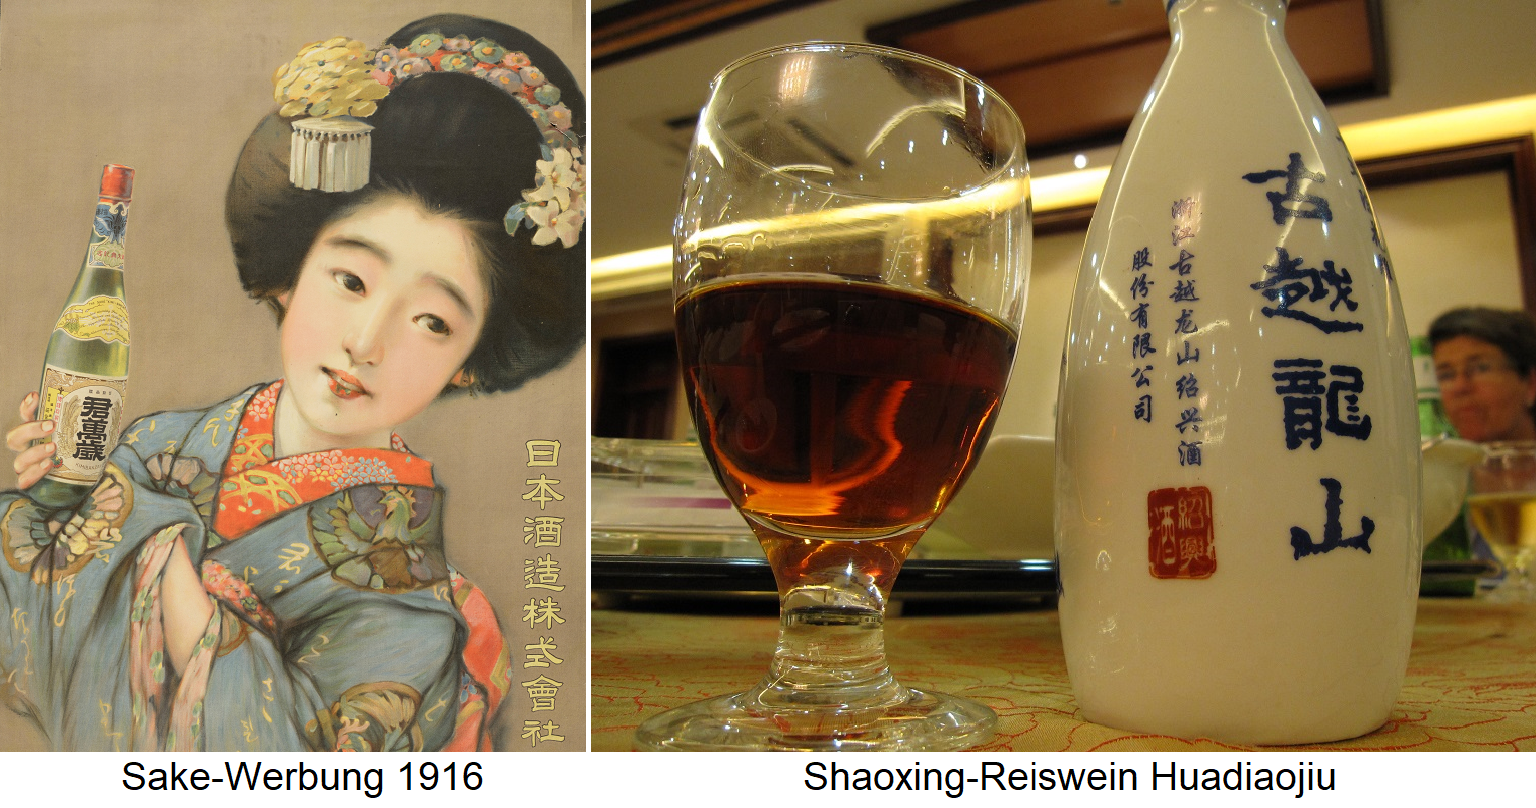 Sake advertising poster for Sake 1916 and Shaoxing rice wine Huadiaojiu